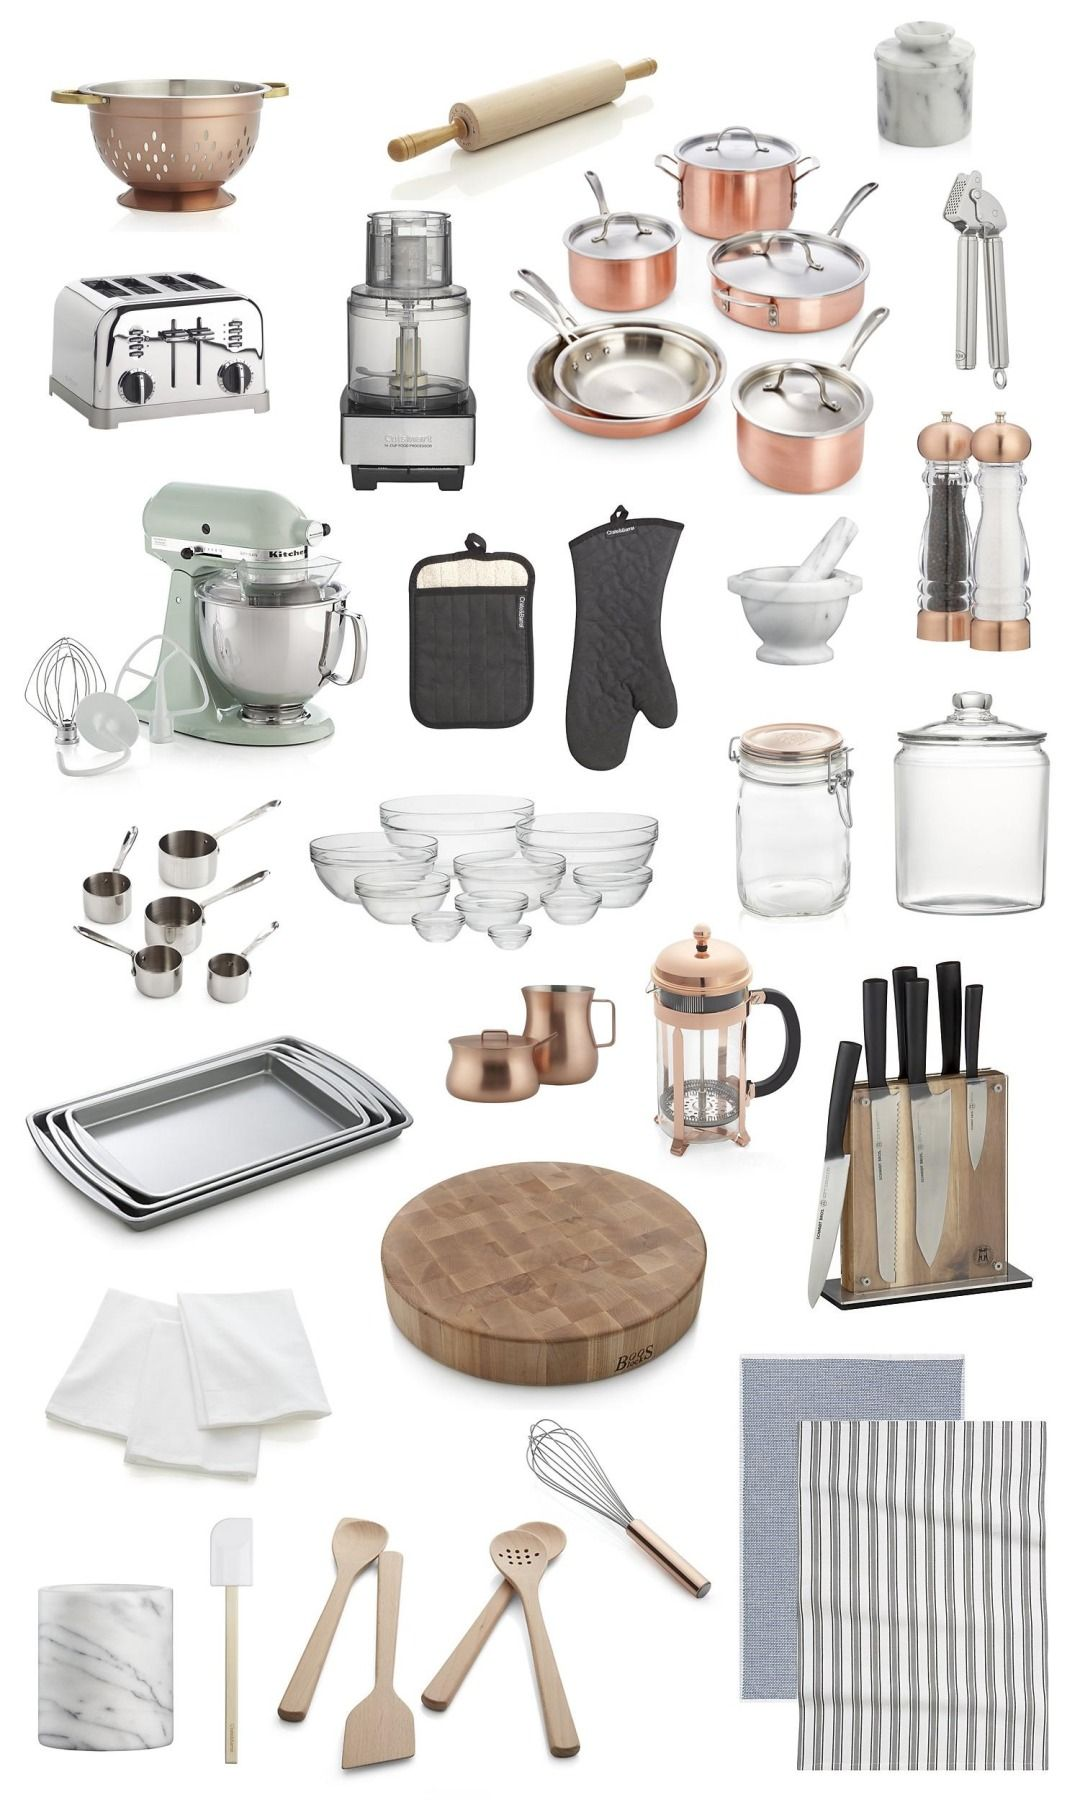 Kitchen small appliance essentials - Collection Of Copper Glass Stainless Steel Kitchen Accessories